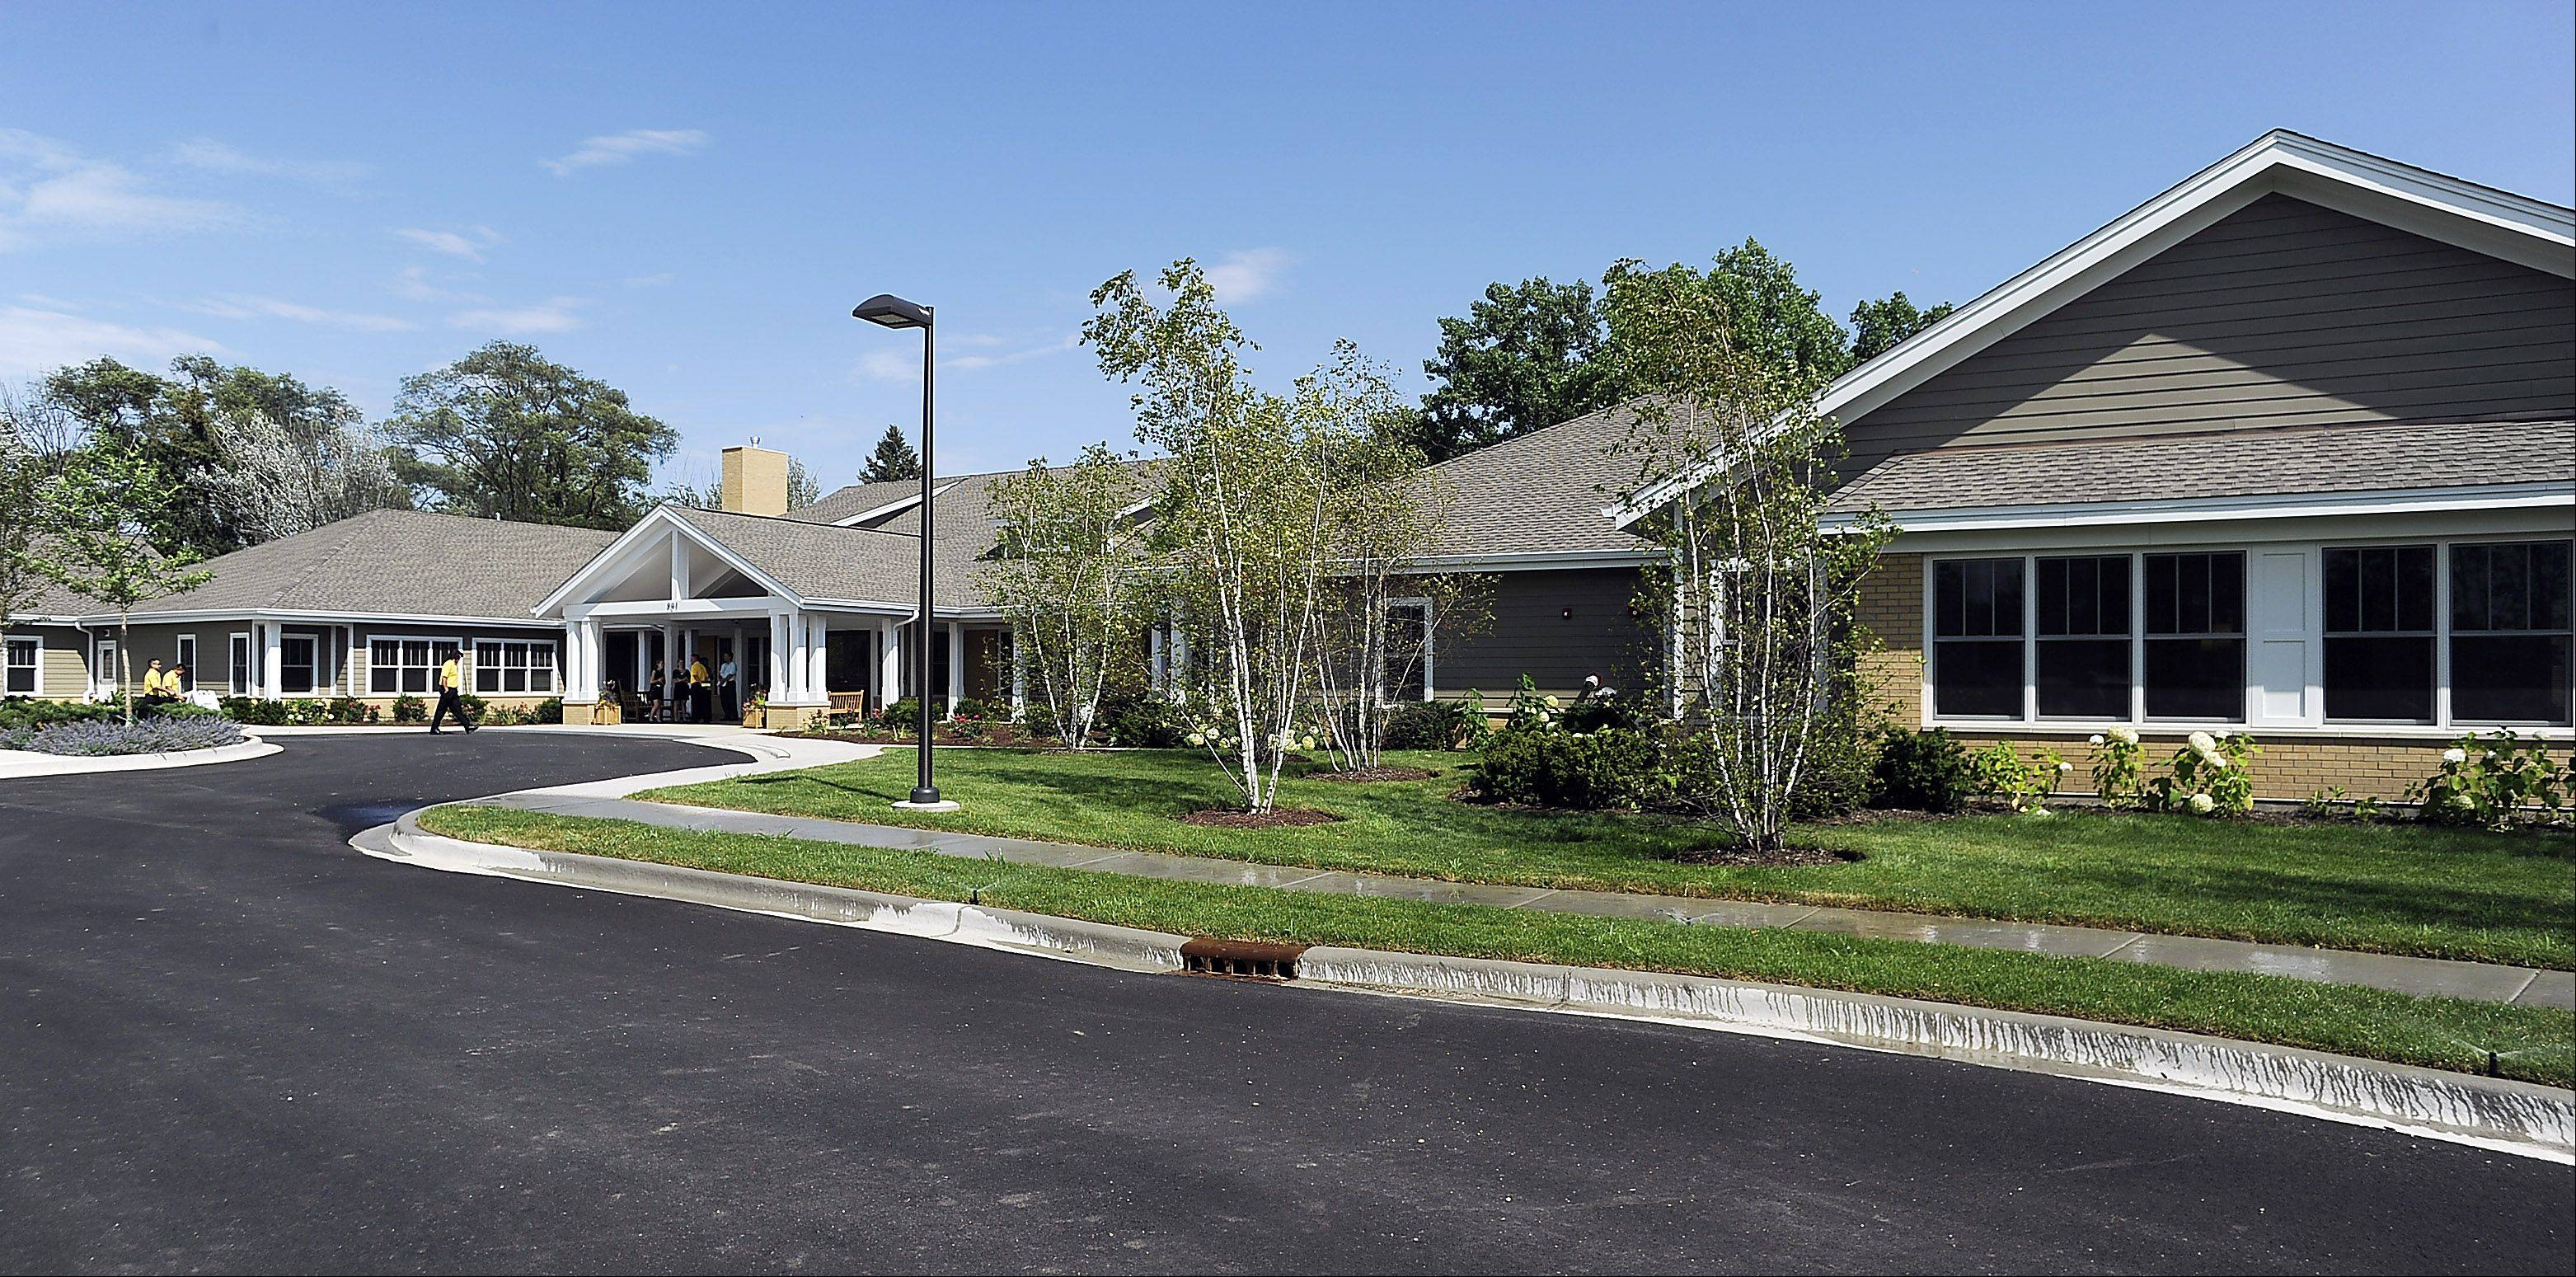 The ceremonial opening of the Alexian Brothers Hospice Residence in Elk Grove Village took place Friday.